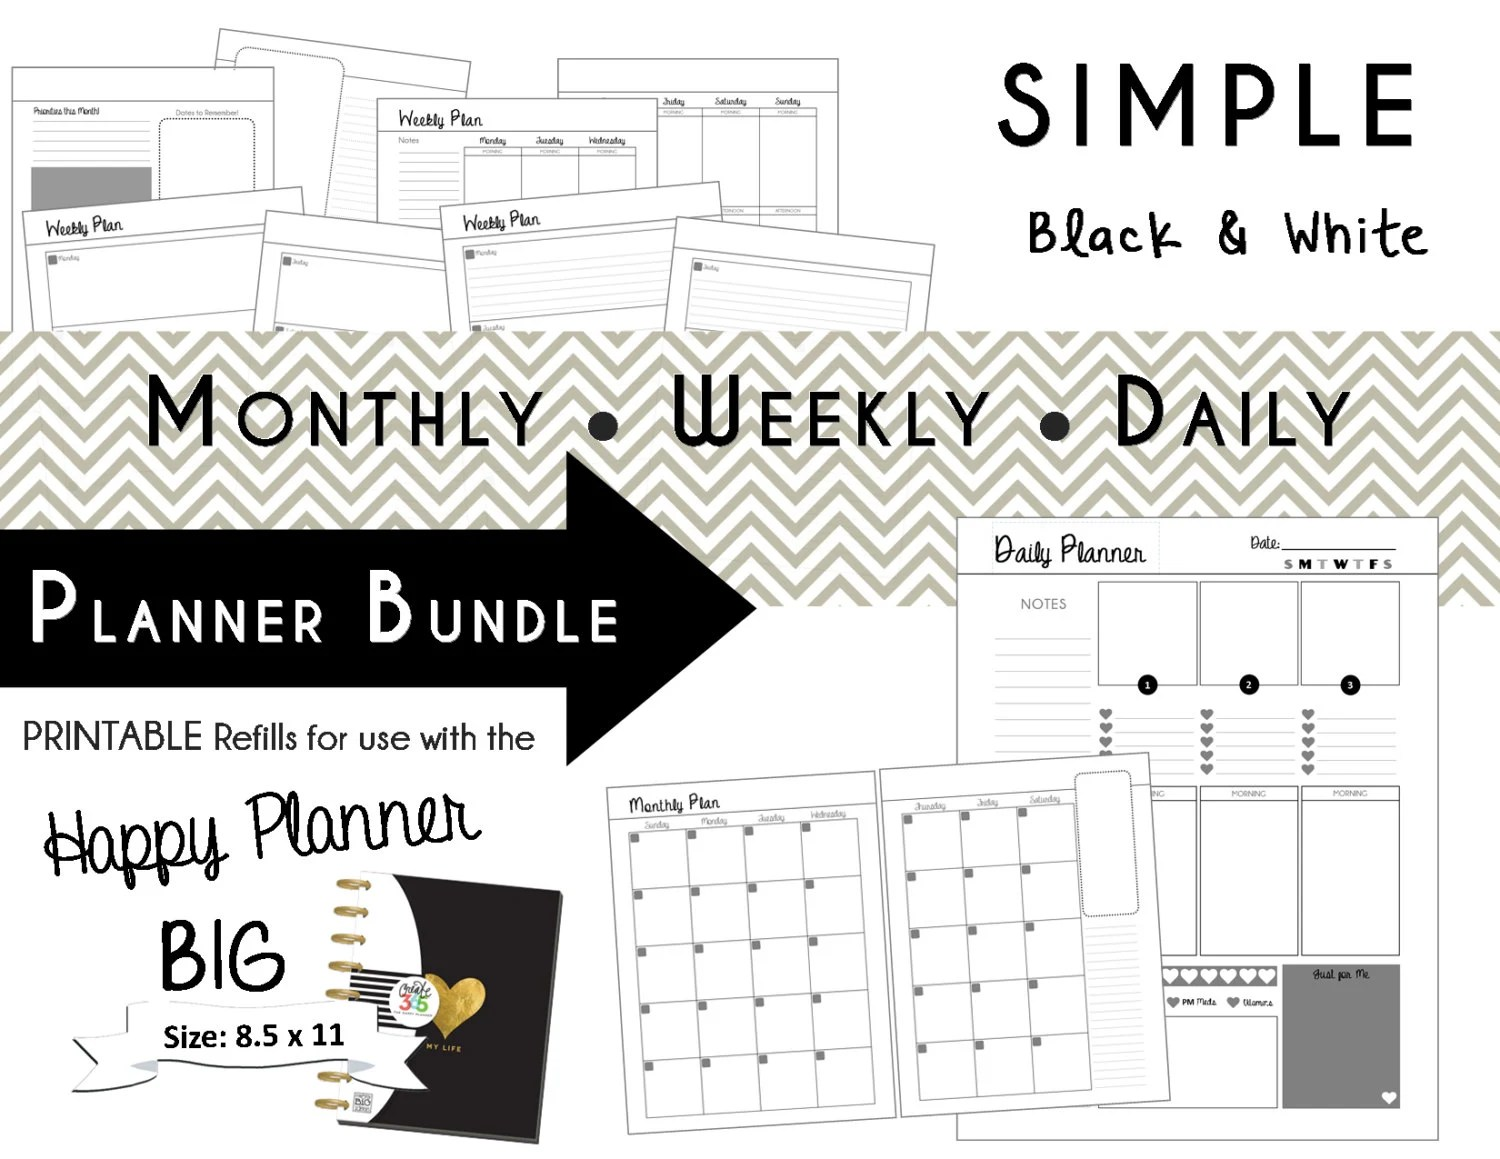 HAPPY PLANNER Daily Planner Refills Printable PDF Classic